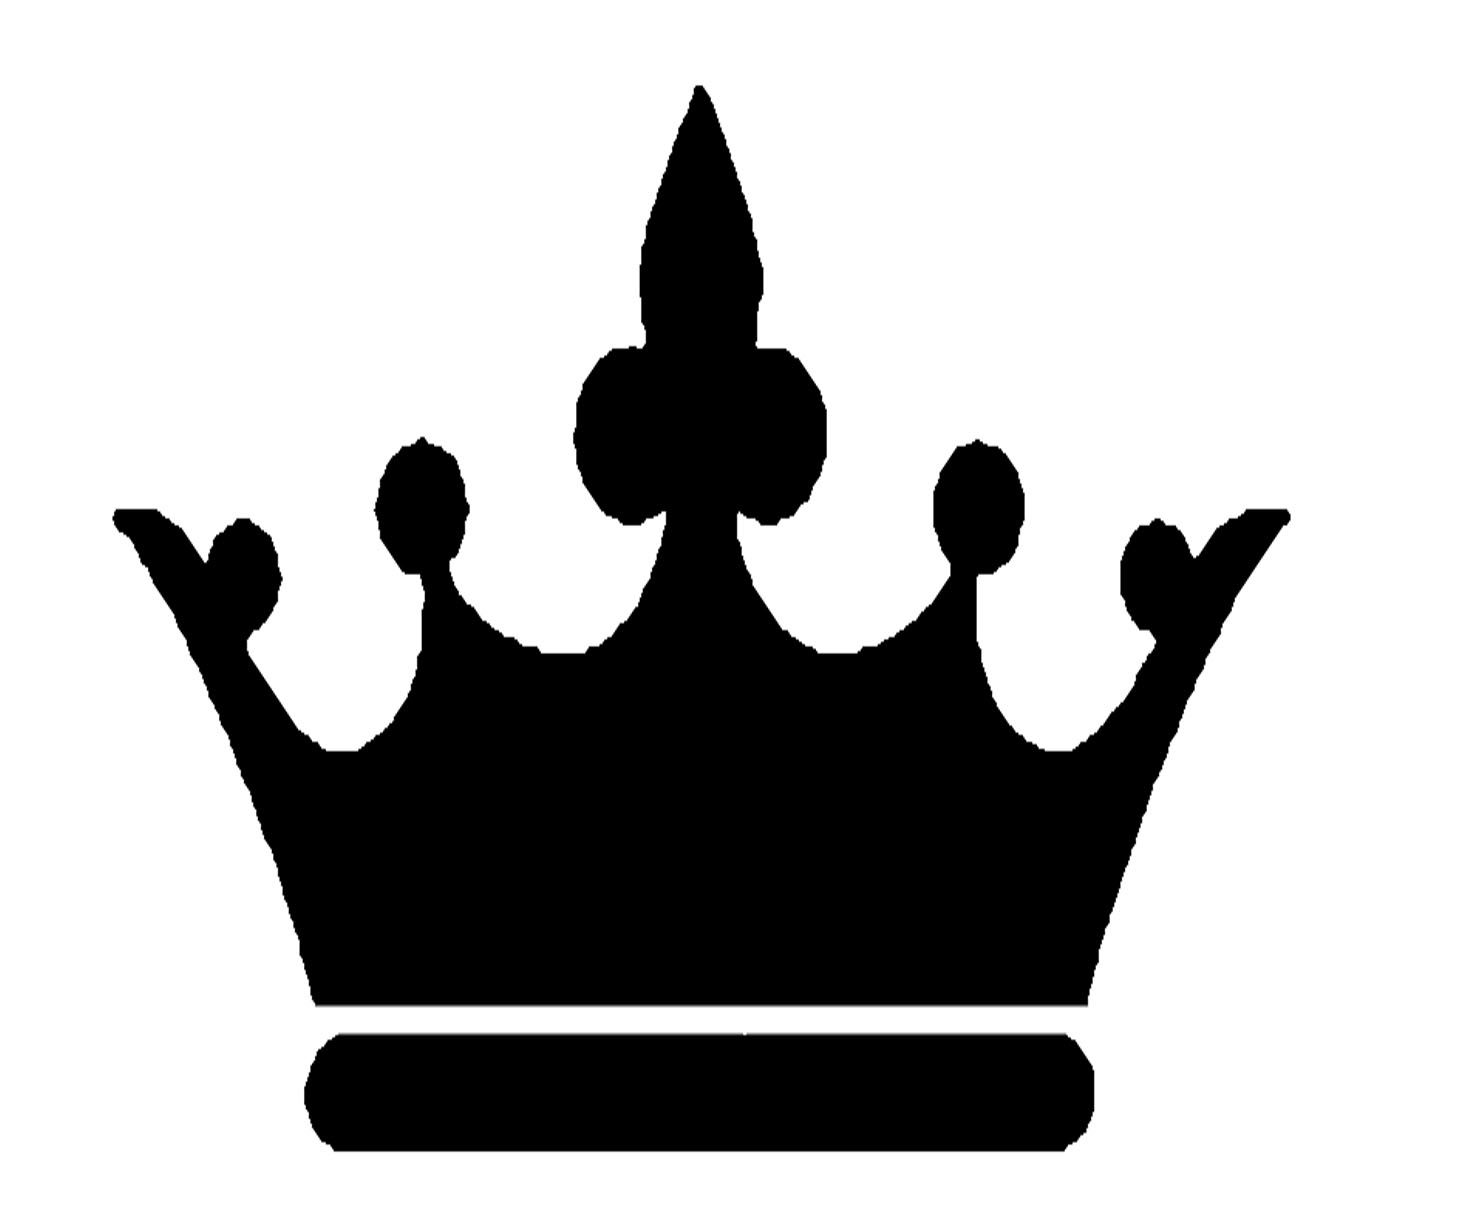 king crown silhouette at getdrawings com free for personal use rh getdrawings com king crown clipart silhouette king crown clip art image